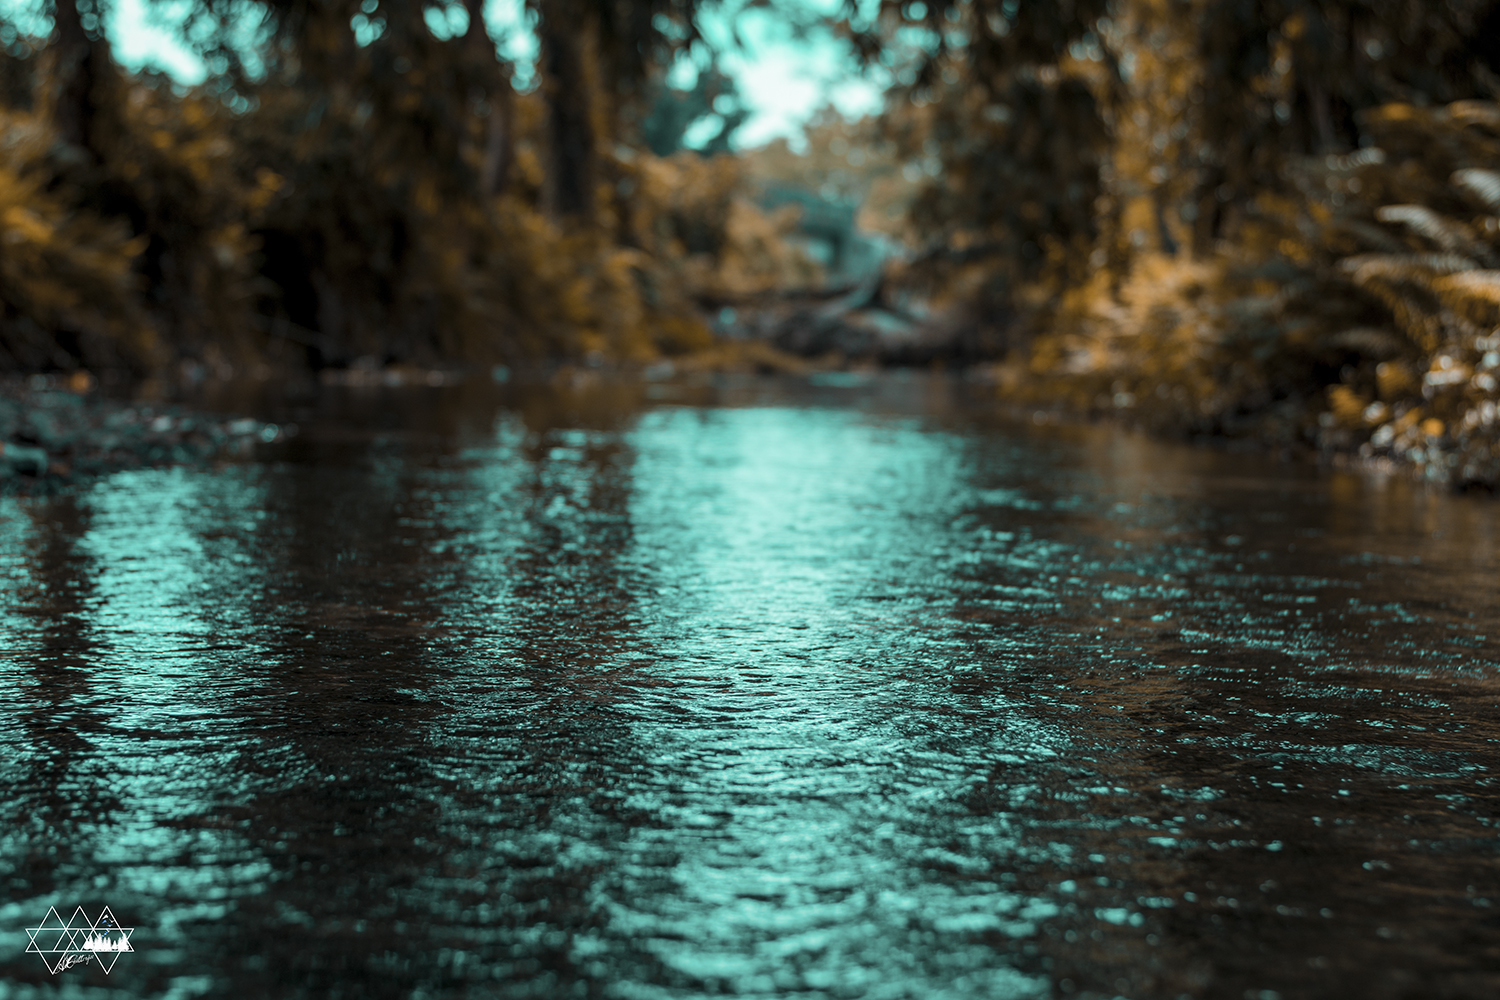 Weird is this water which keeps on flowing. It takes the shape of wherever you put it. but when it revokes it can destroy everything in its way. Love is somewhat like the water, it keeps on adjusting until one fine day